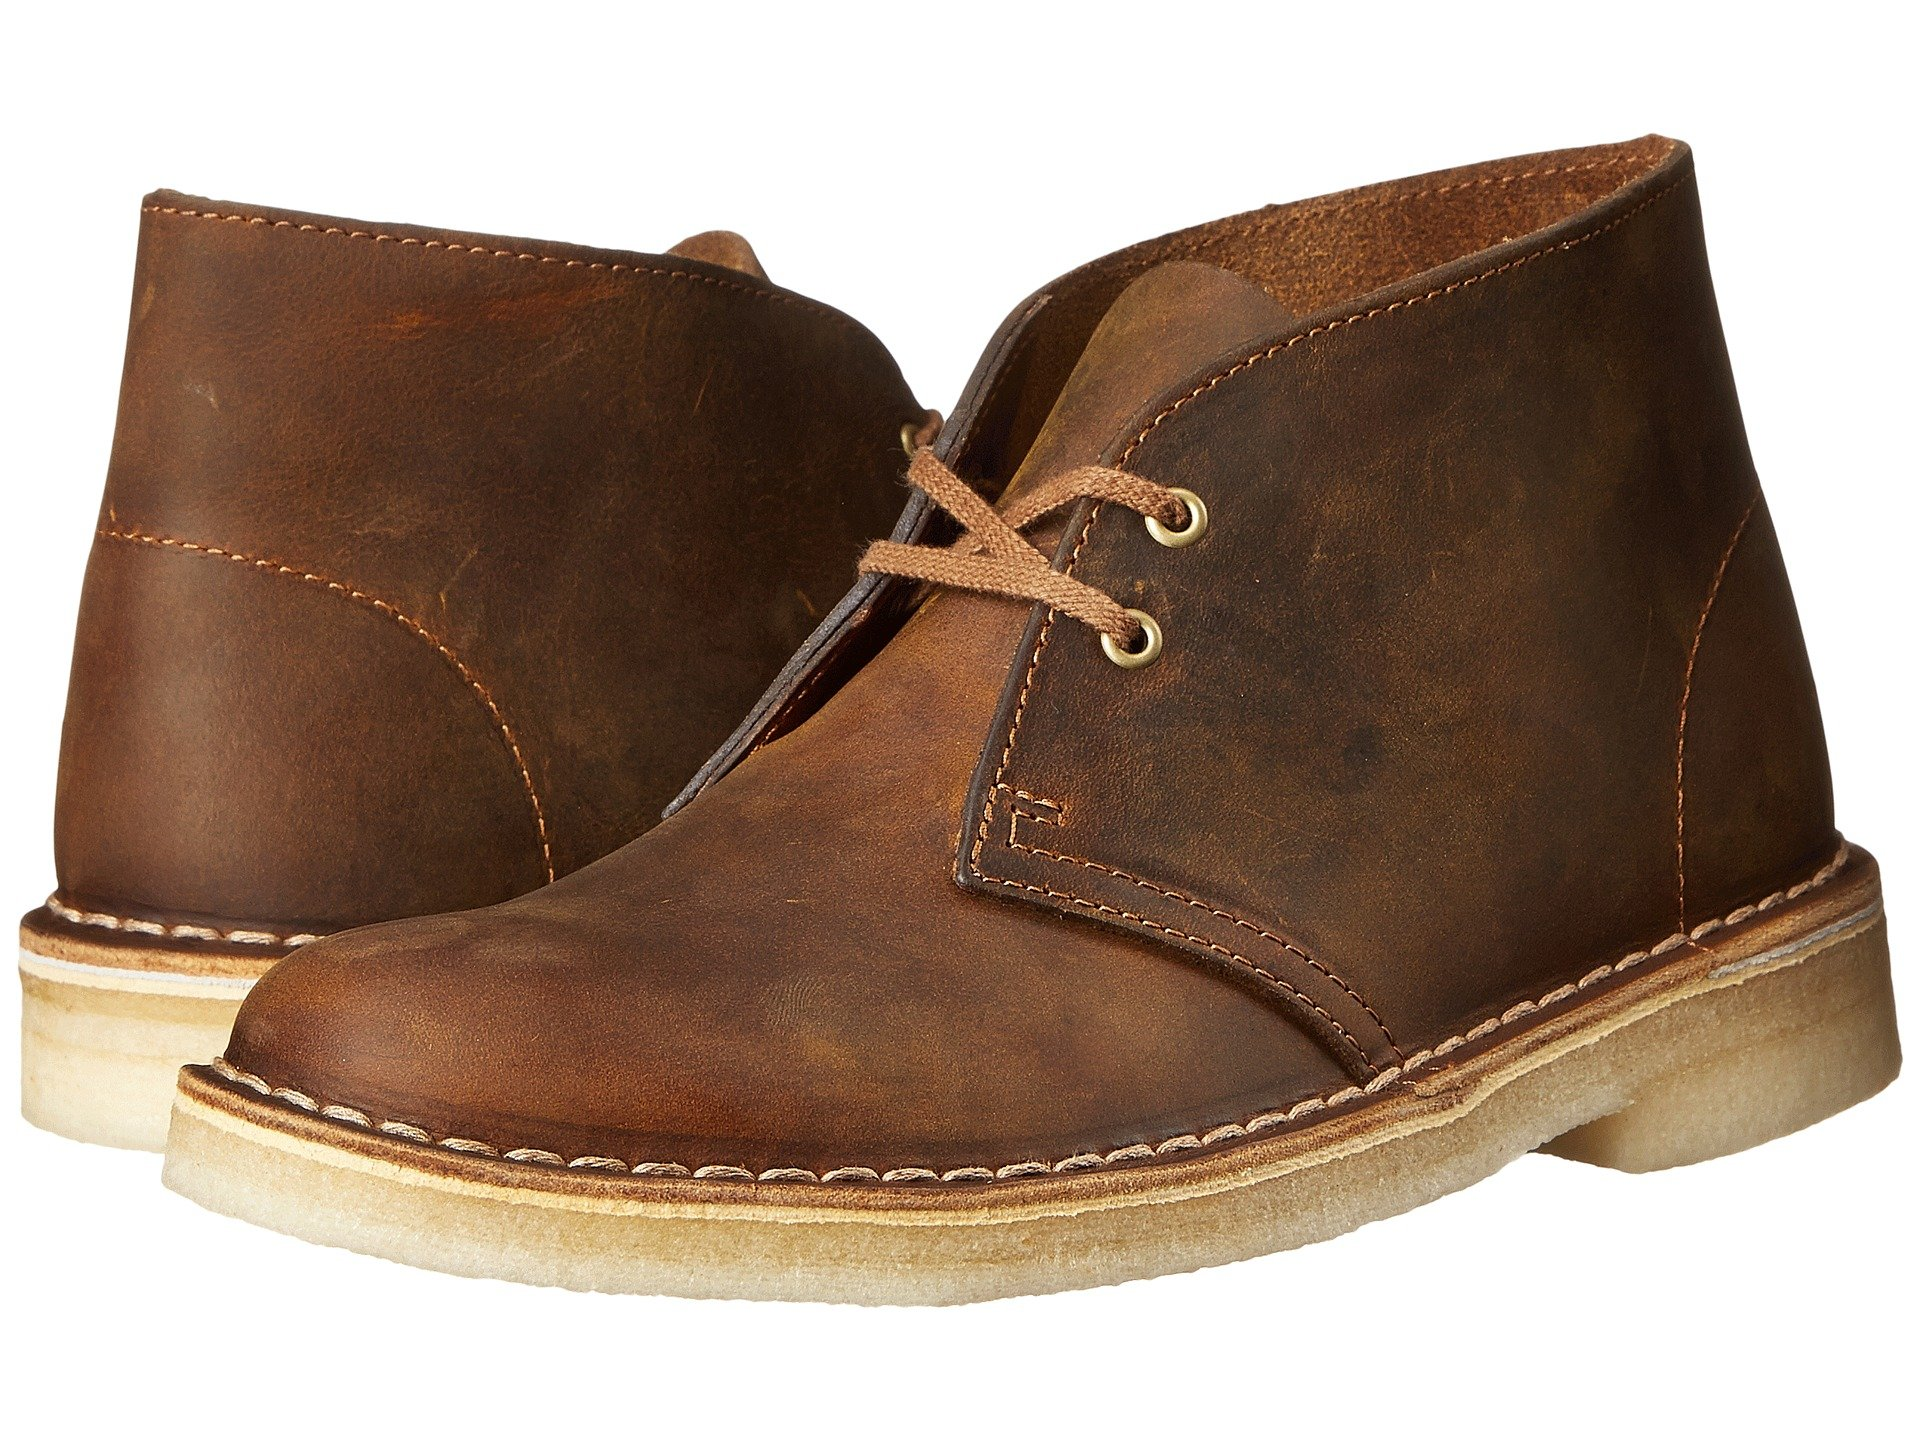 clarks womens brown boots